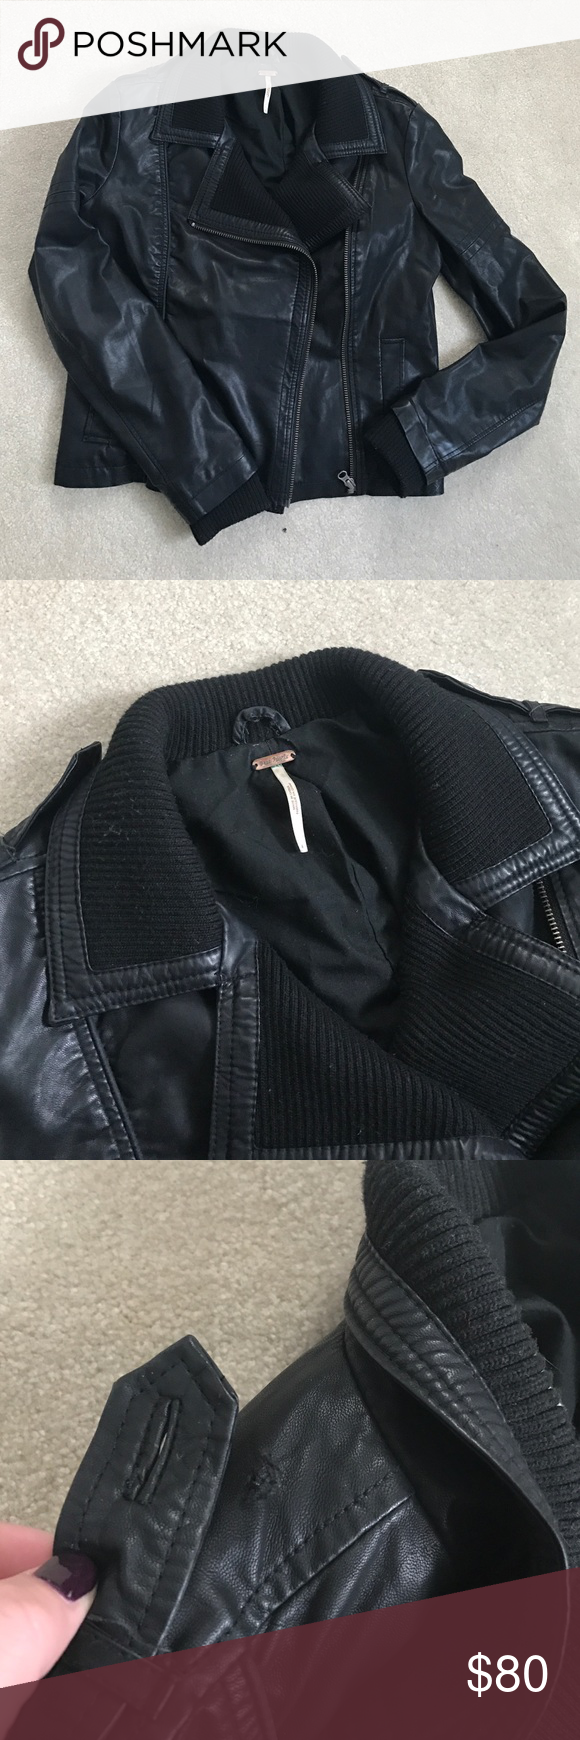 FREE PEOPLE Leather Jacket FREE PEOPLE black vegan leather jacket, size 4, amazing condition, button missing on shoulder as pictured Free People Jackets & Coats